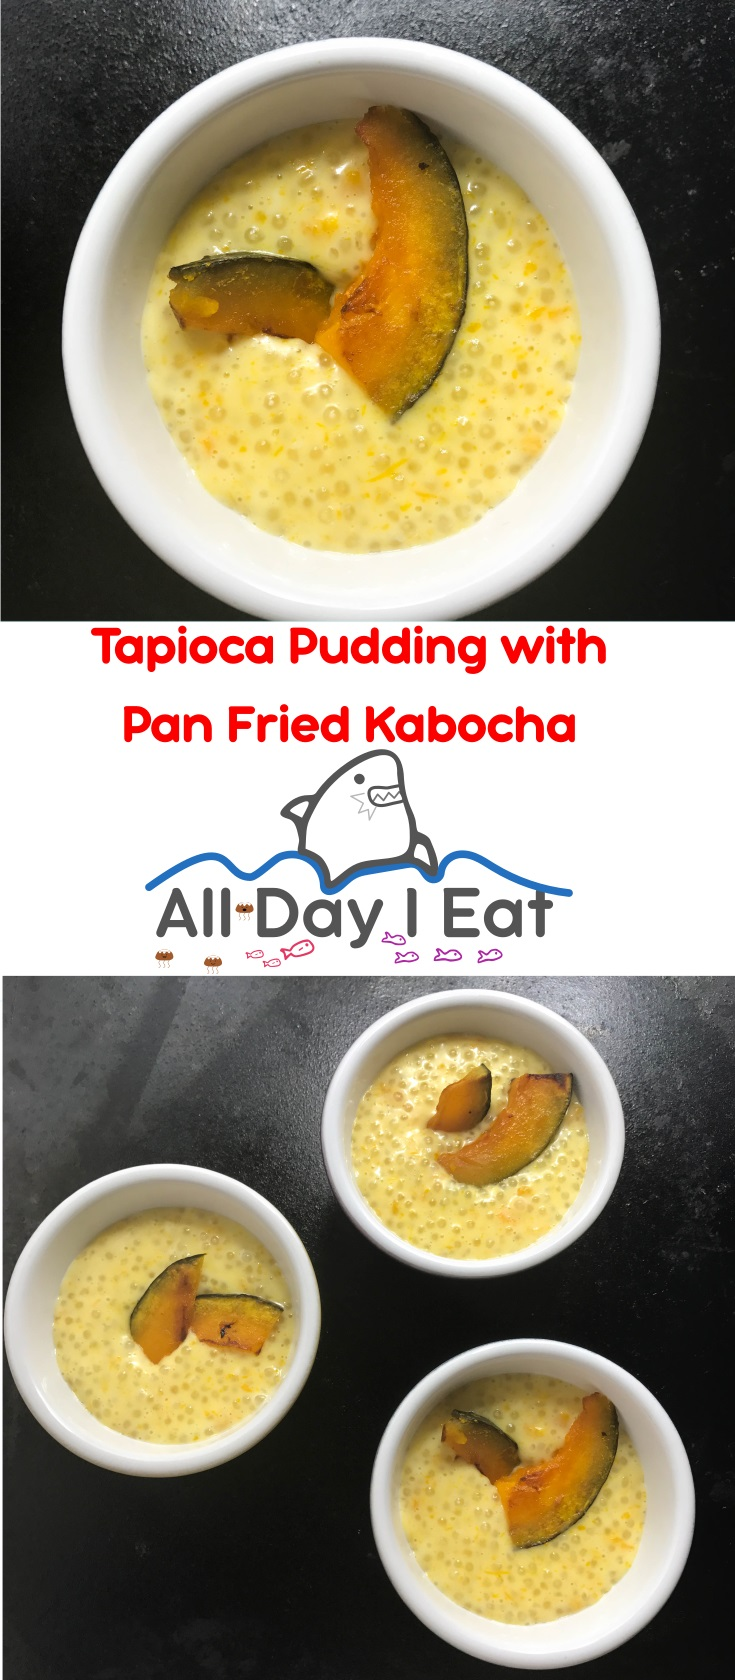 Tapioca Pudding with Pan-Fried Kabocha (Japanese pumpkin) | www.alldayieat.com